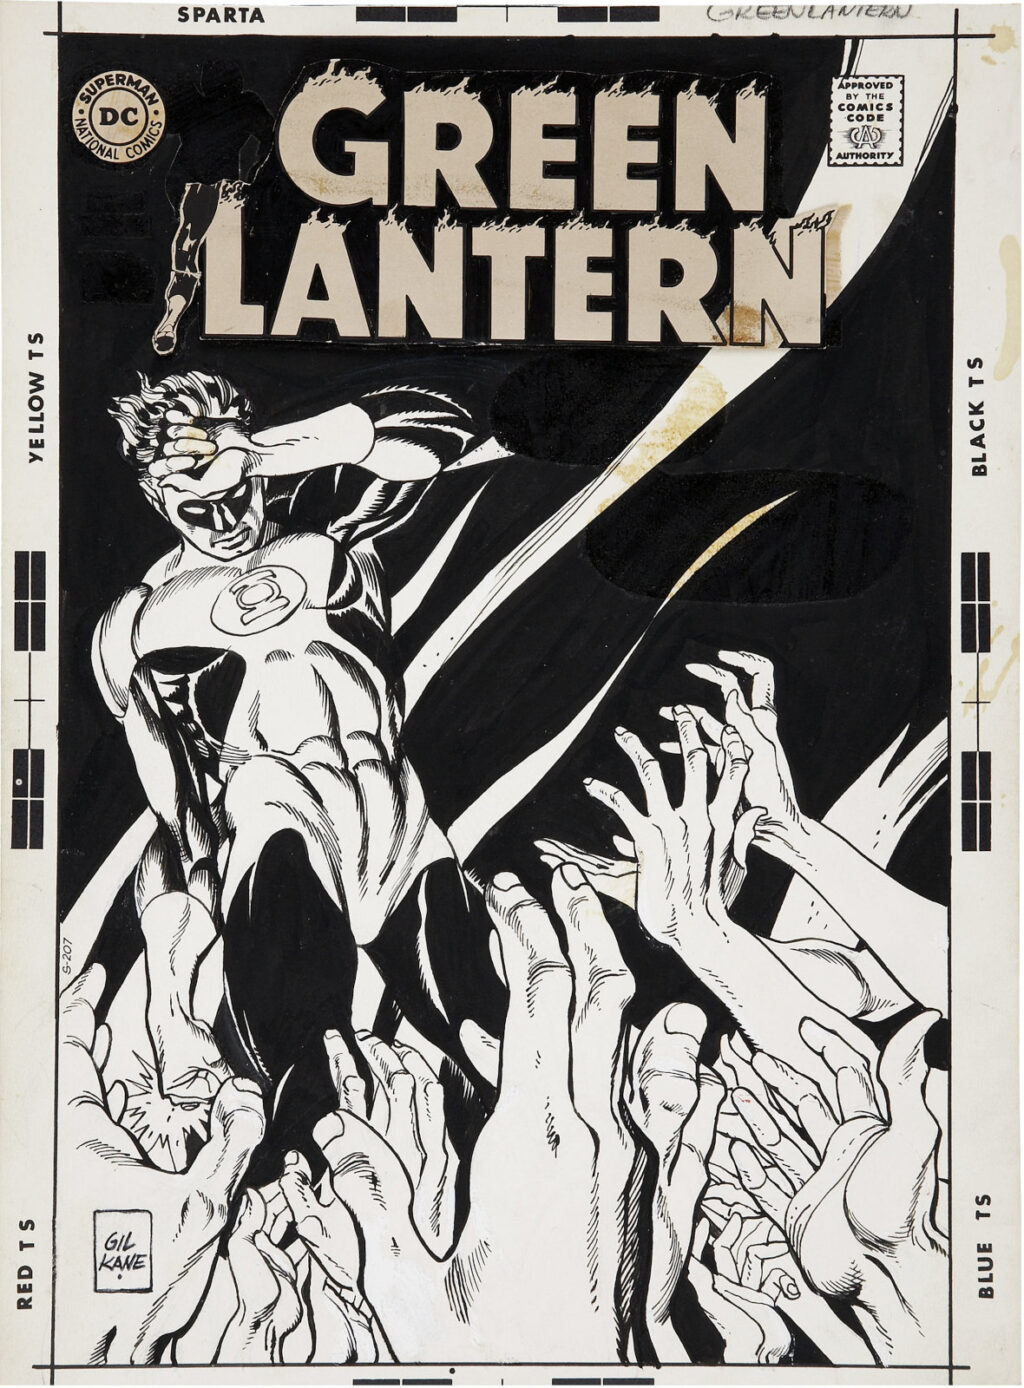 Green Lantern issue 71 cover by Gil Kane